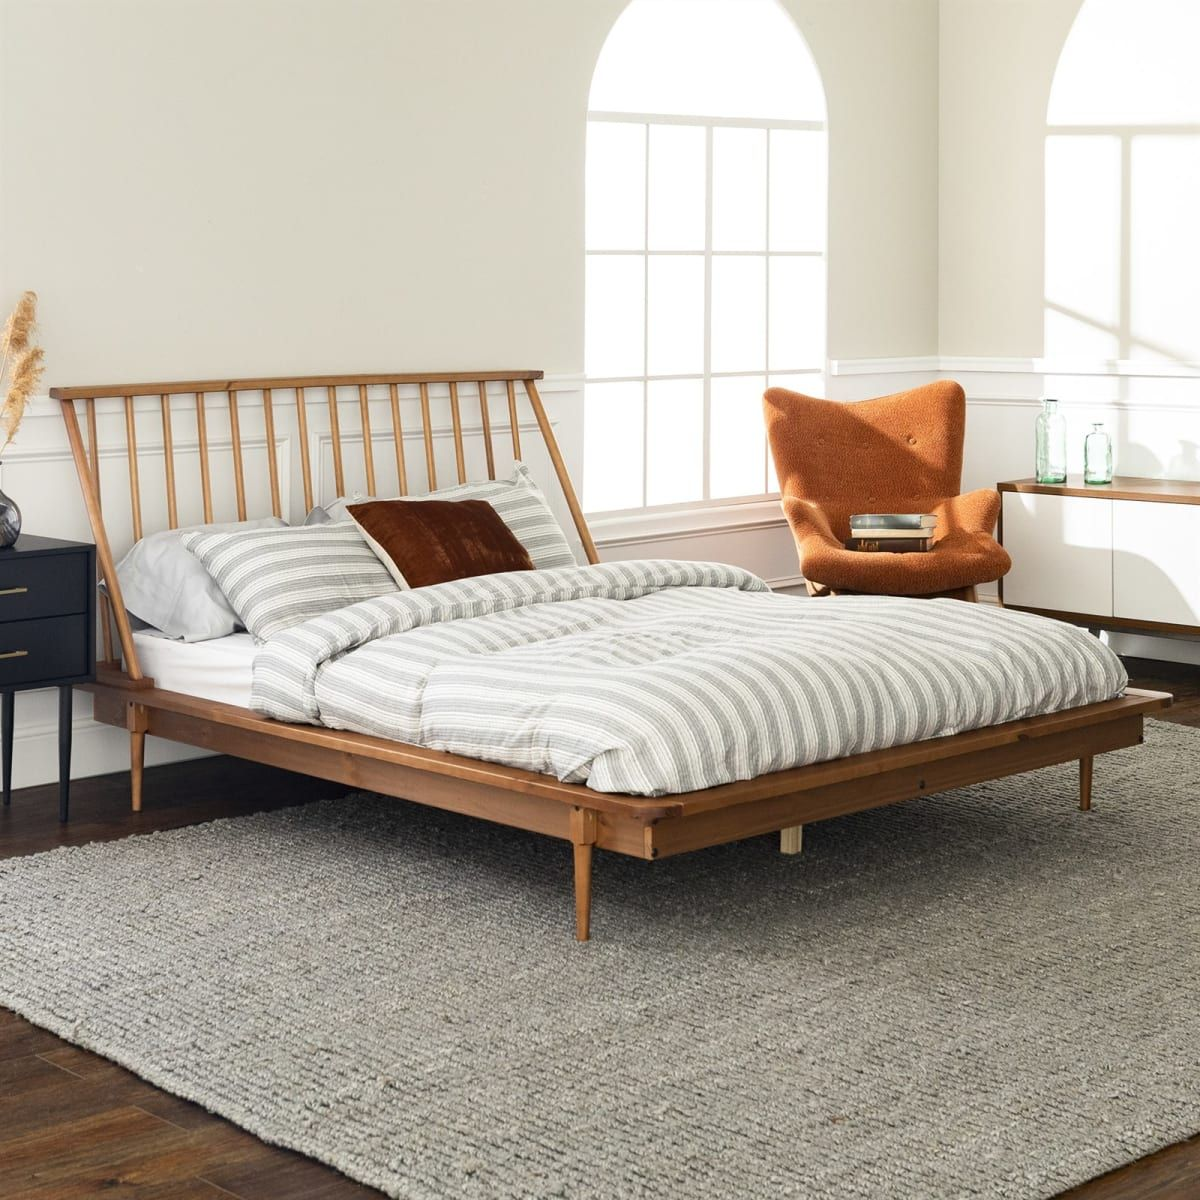 Modern Wood Queen Spindle Bed in 2020 | Spindle bed, Boho ... on Modern Boho Bed Frame  id=42333